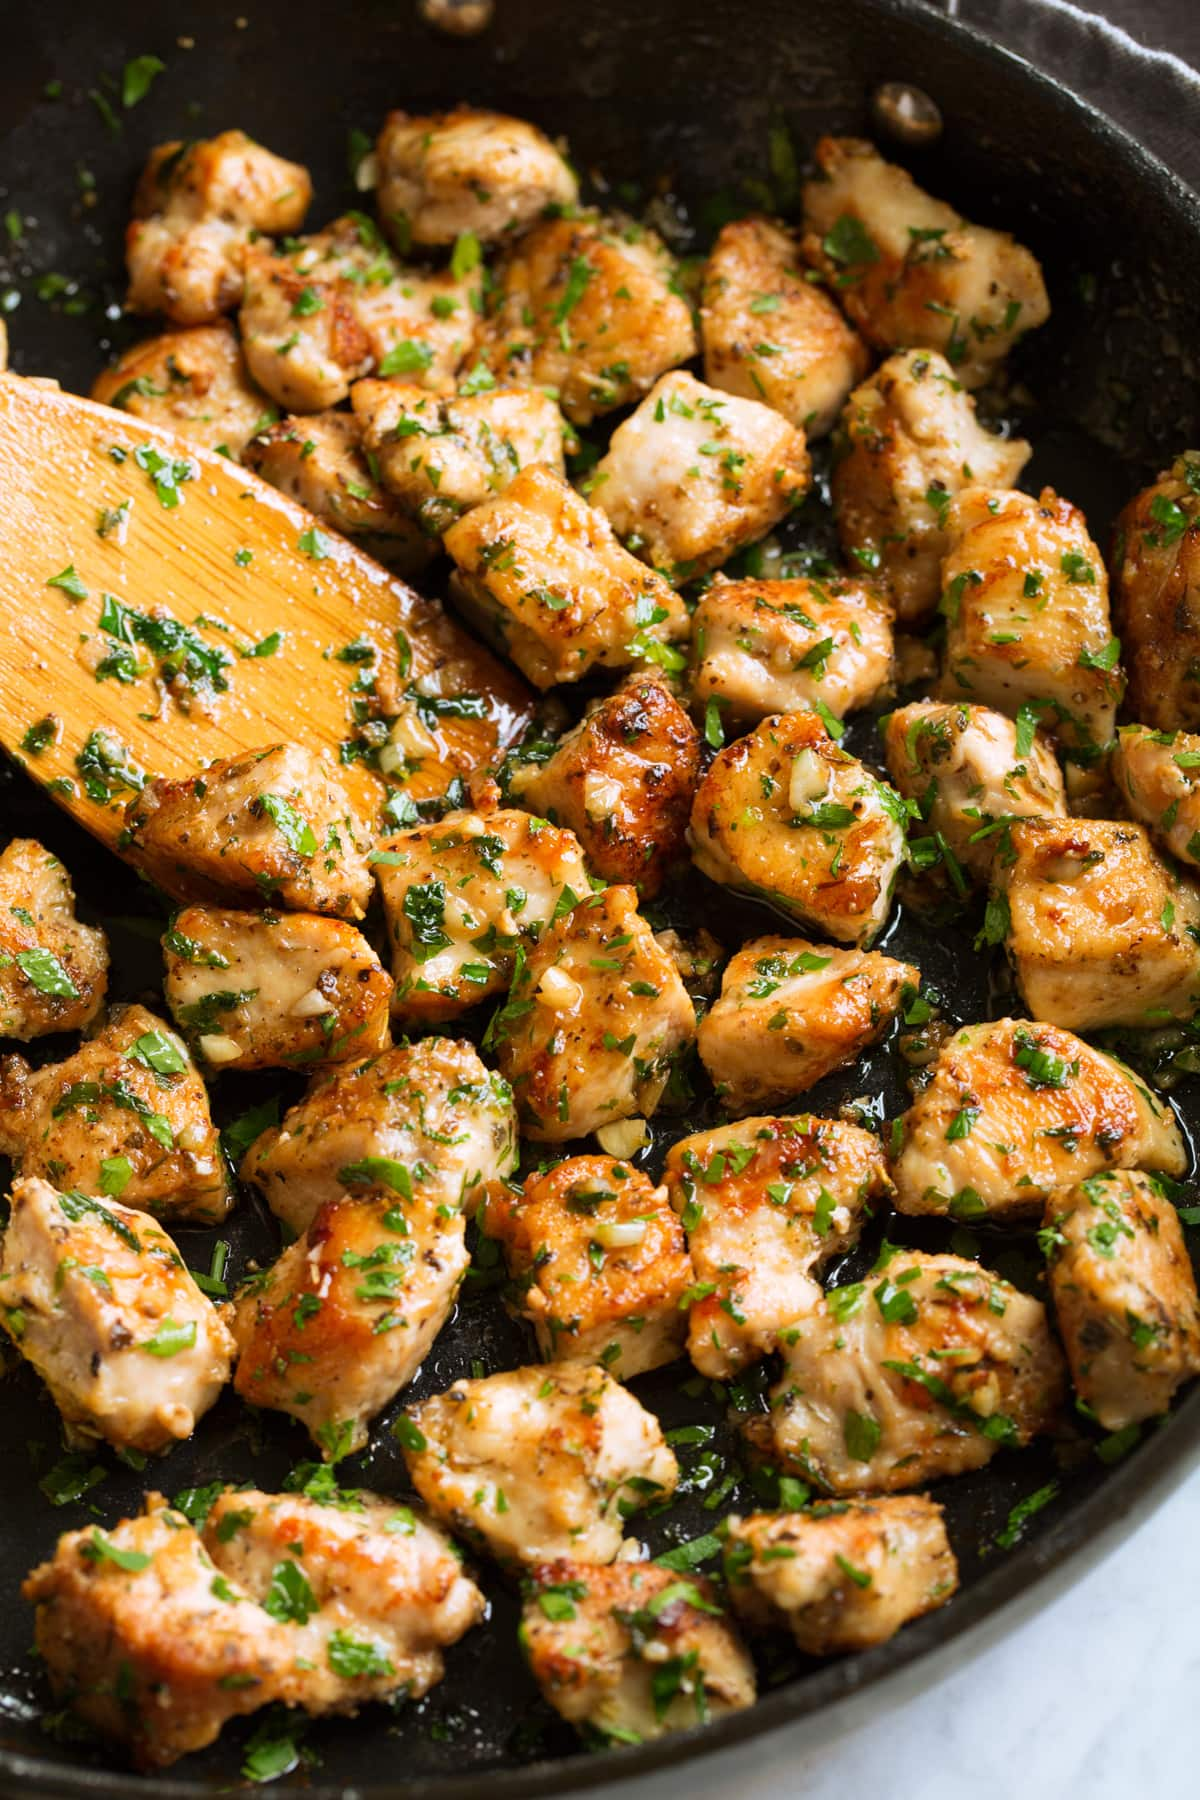 Chicken bites in a skillet with garlic and butter sauce.